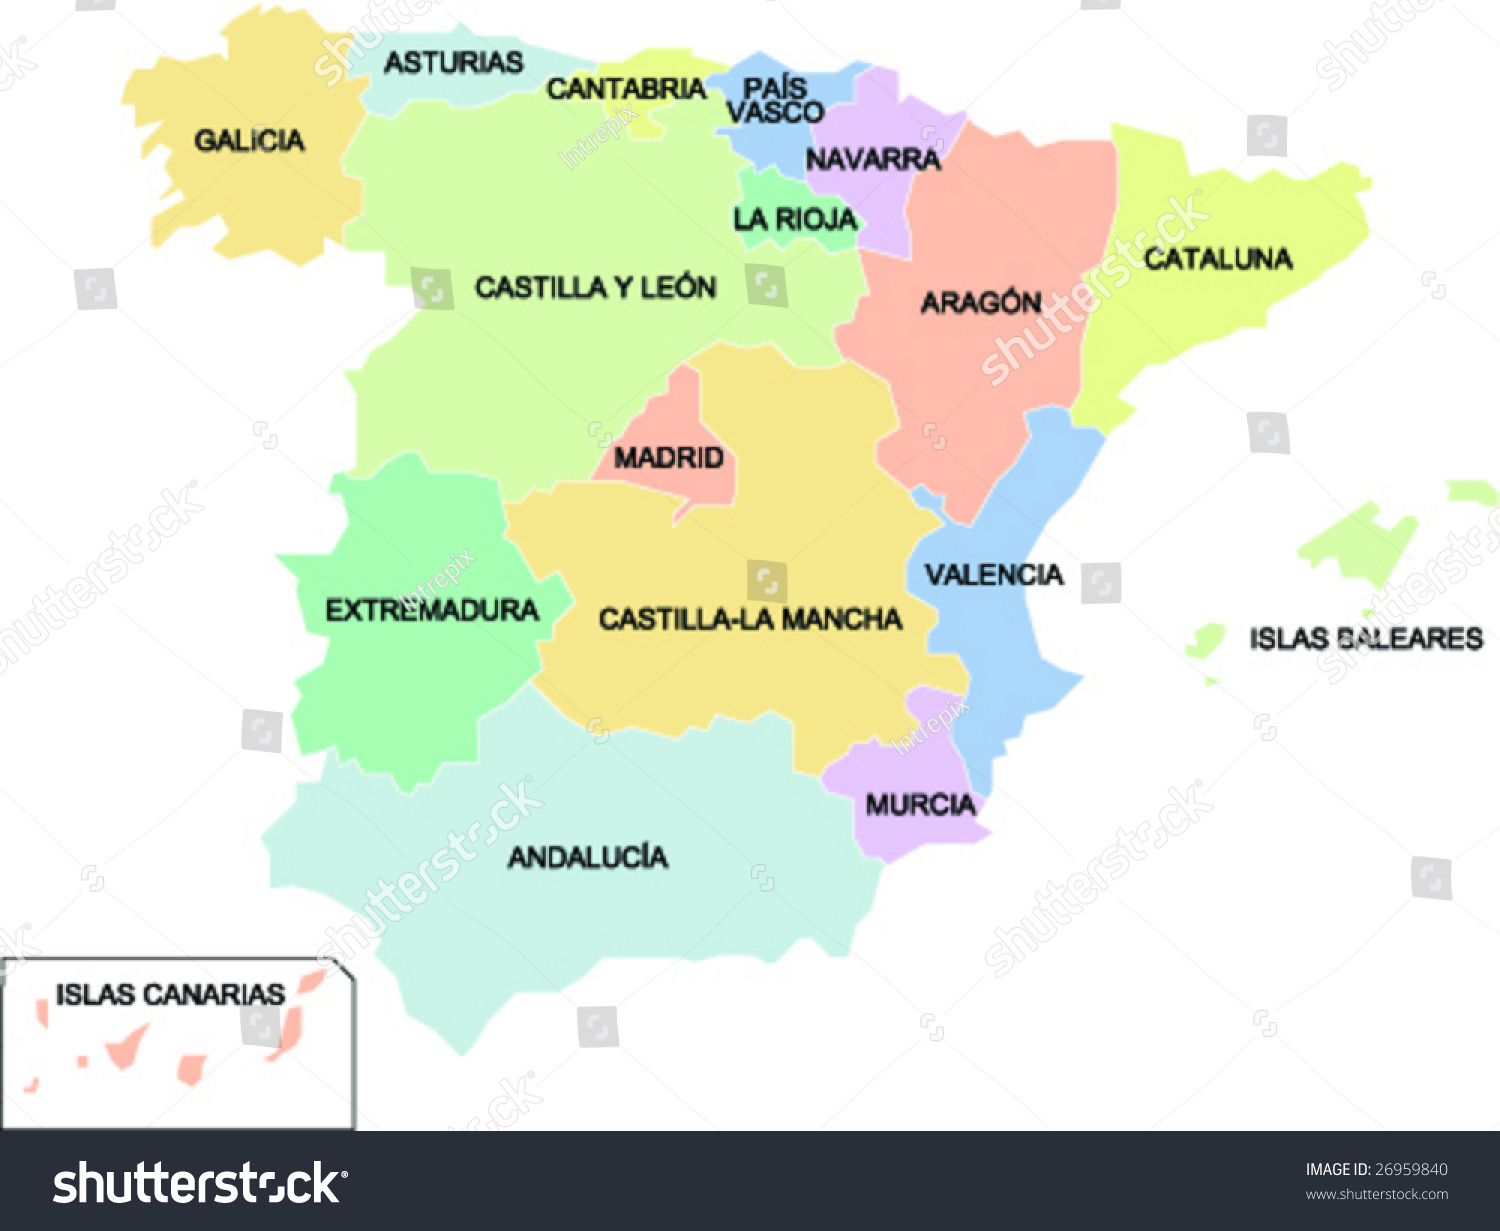 Political Map Spain Showing Different Regions Stock Vector - Spain political map